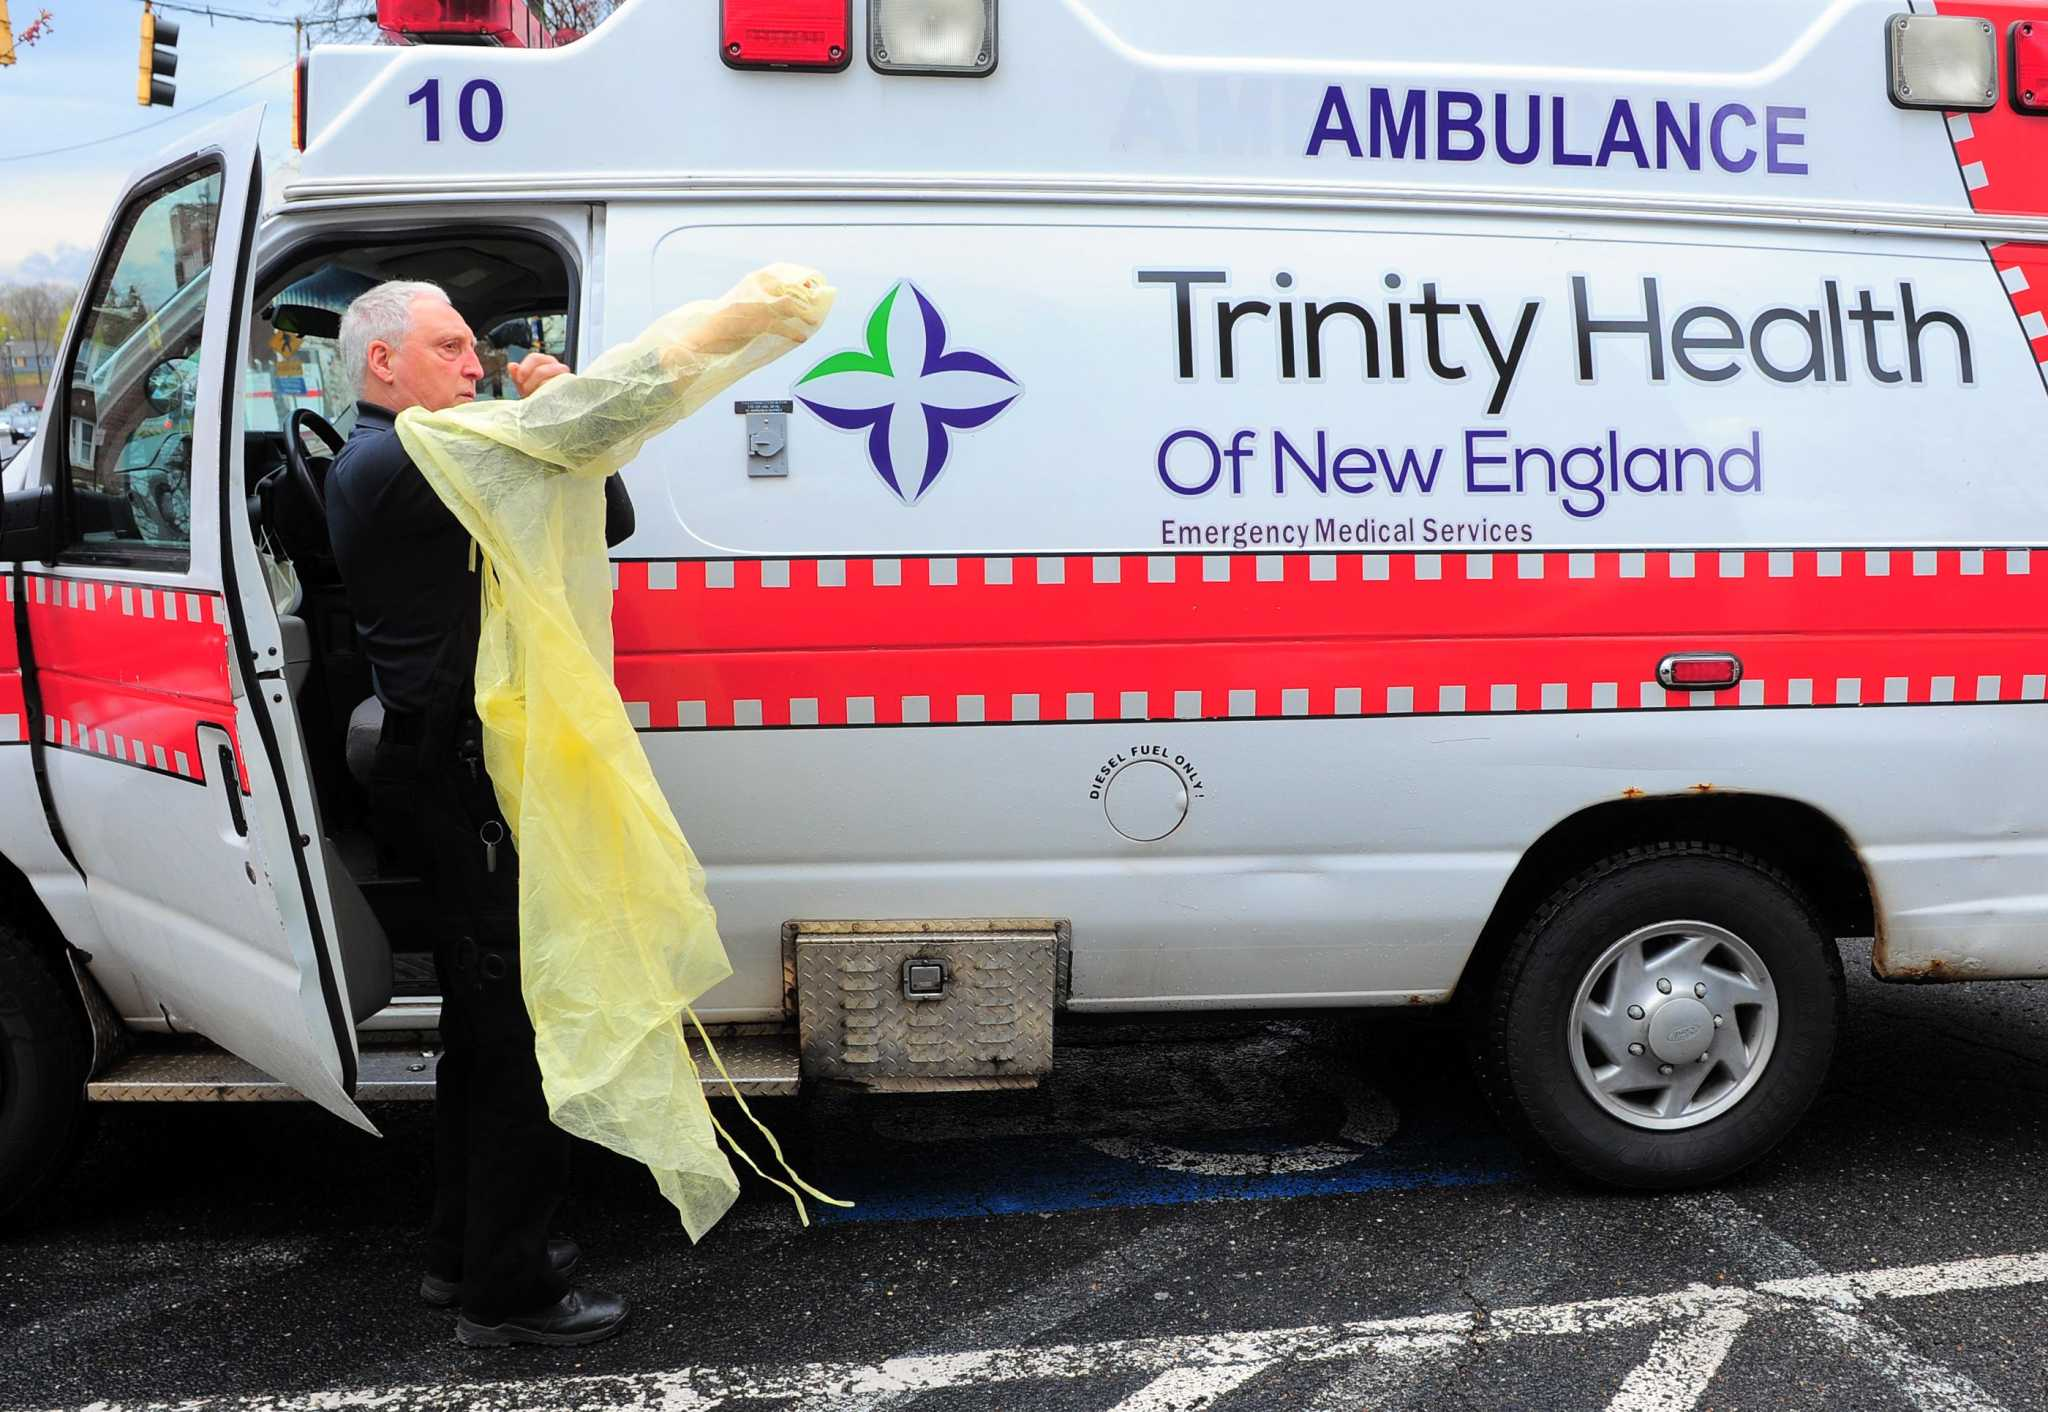 Trinity Health holds CT's first 24-hour COVID vaccine clinic